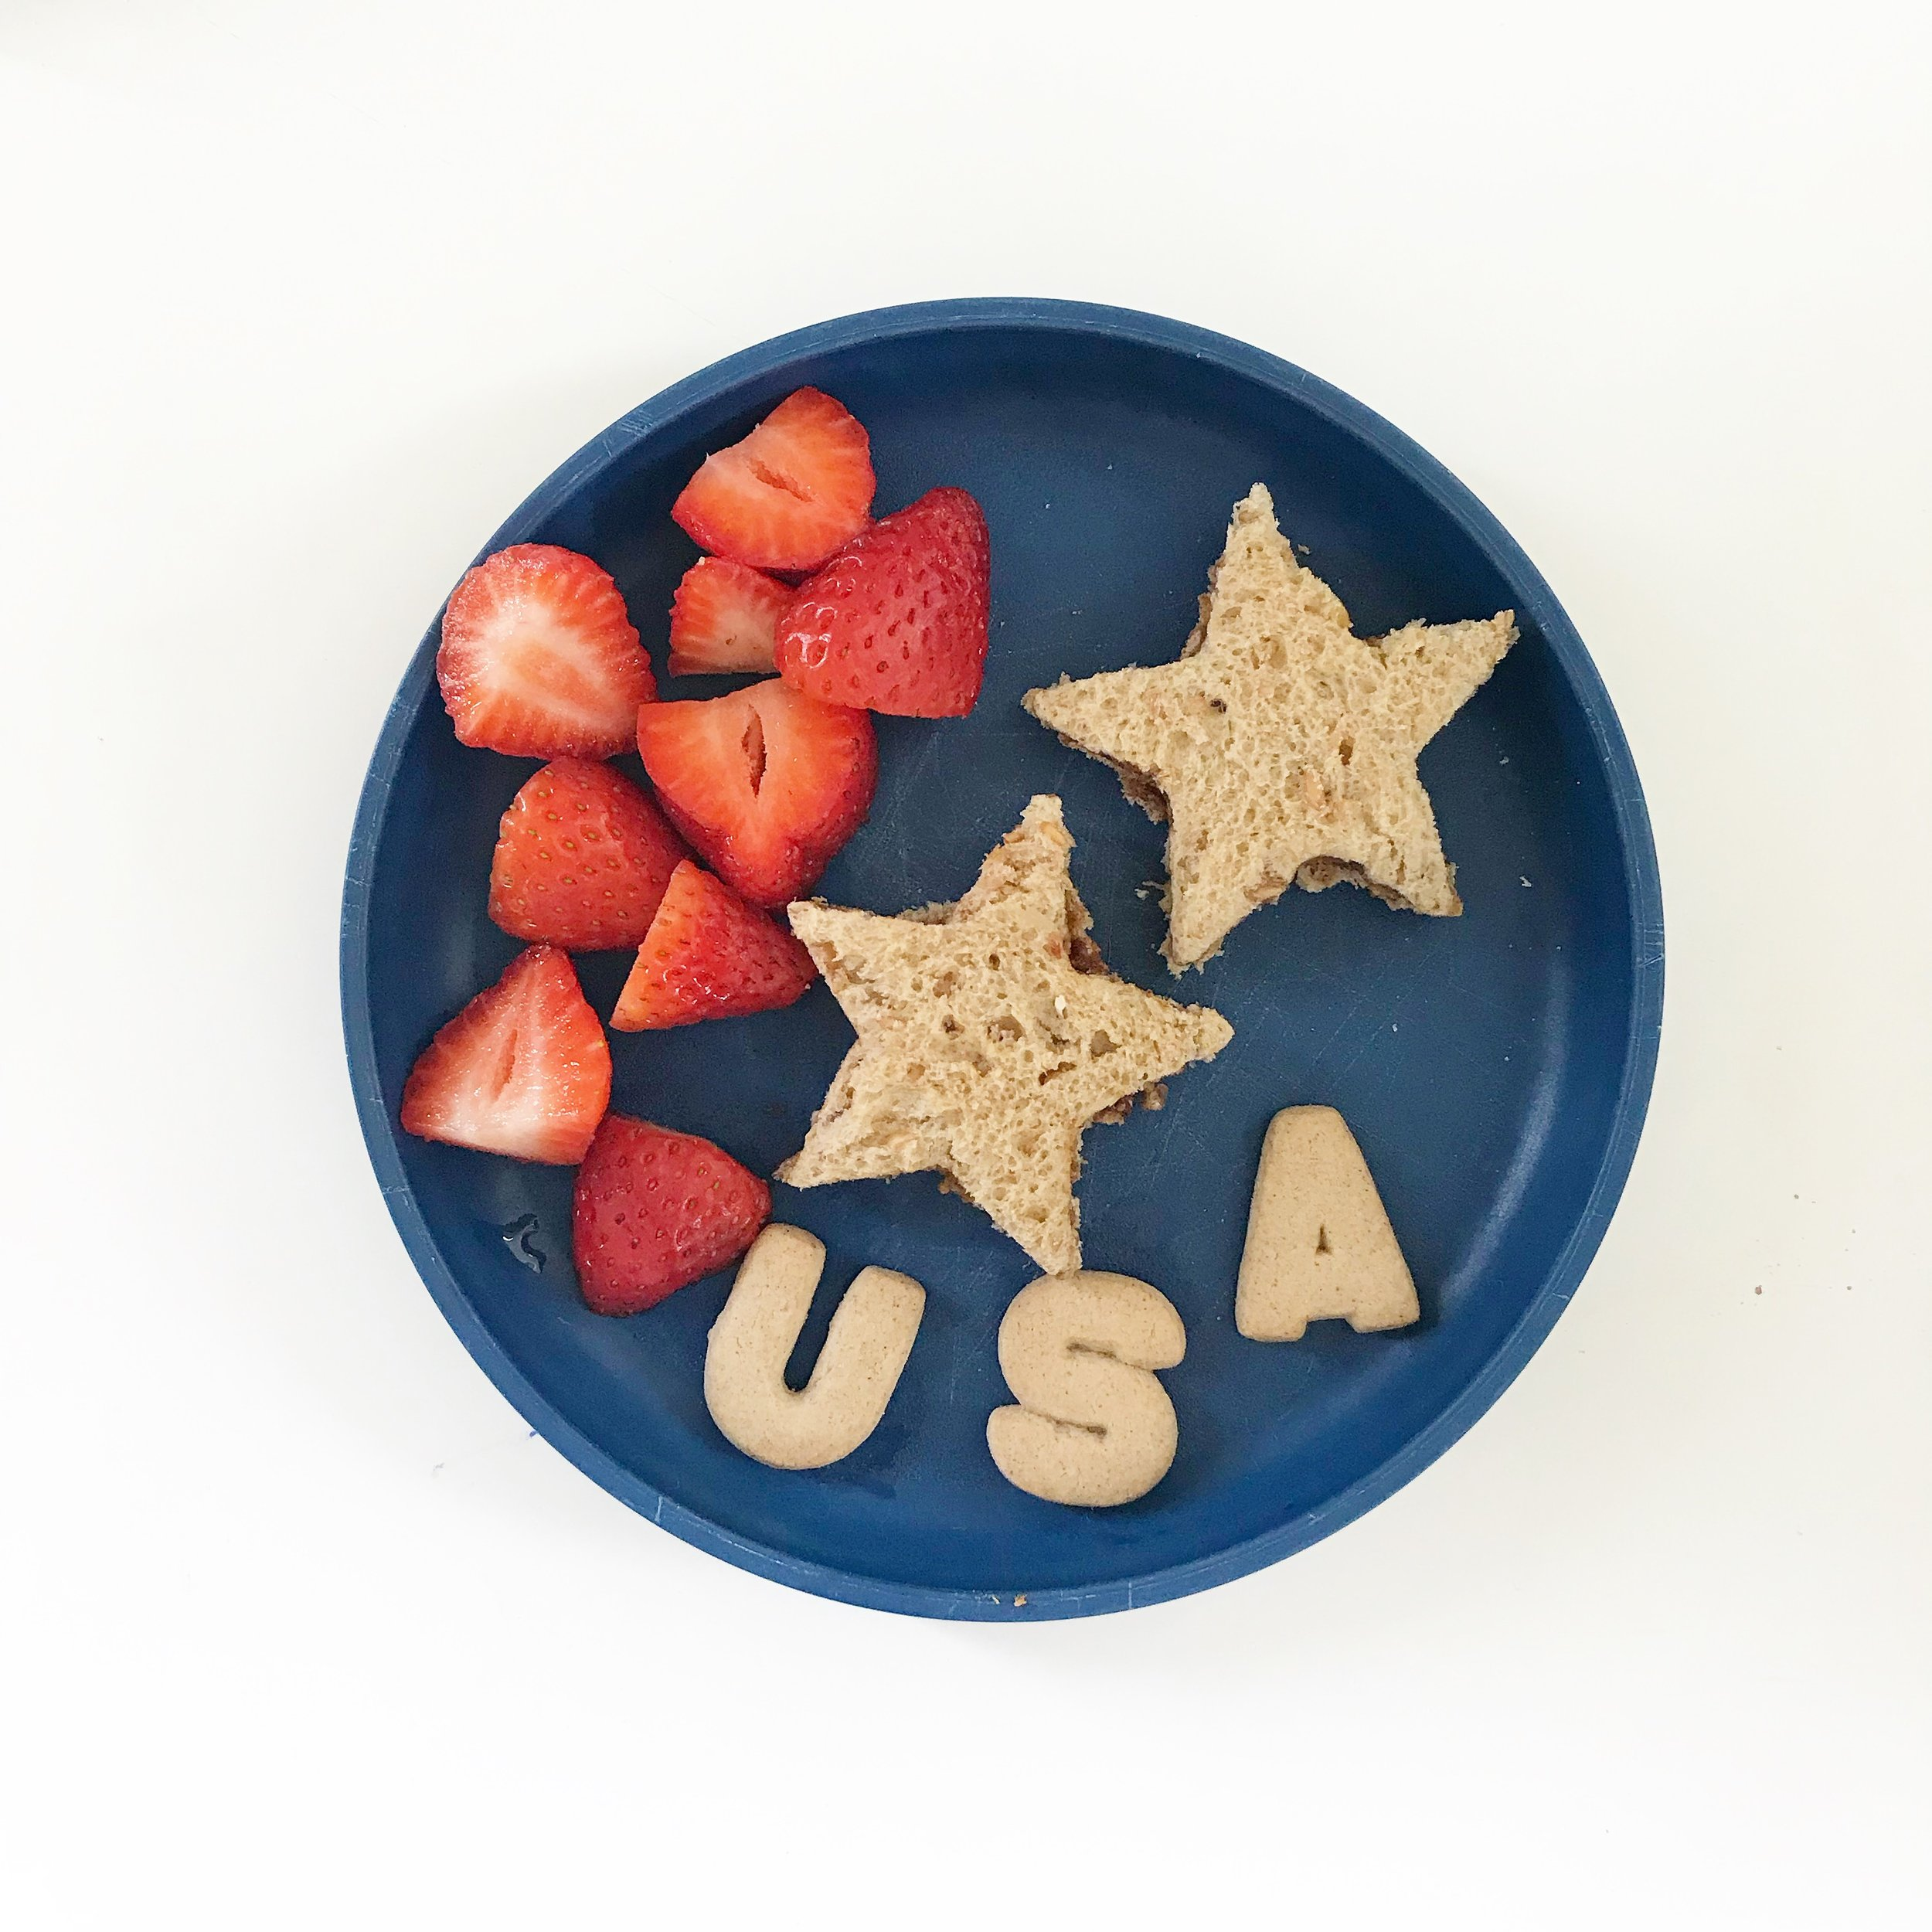 Fun shaped sandwiches can make a picky eater go mmmm.  We put  Better Almond Butter  + honey + chia in our Star Sandwiches  (buy the cookie cutters we used  HERE  for $3.99)  Side of Strawberries  Letter cookies for USA